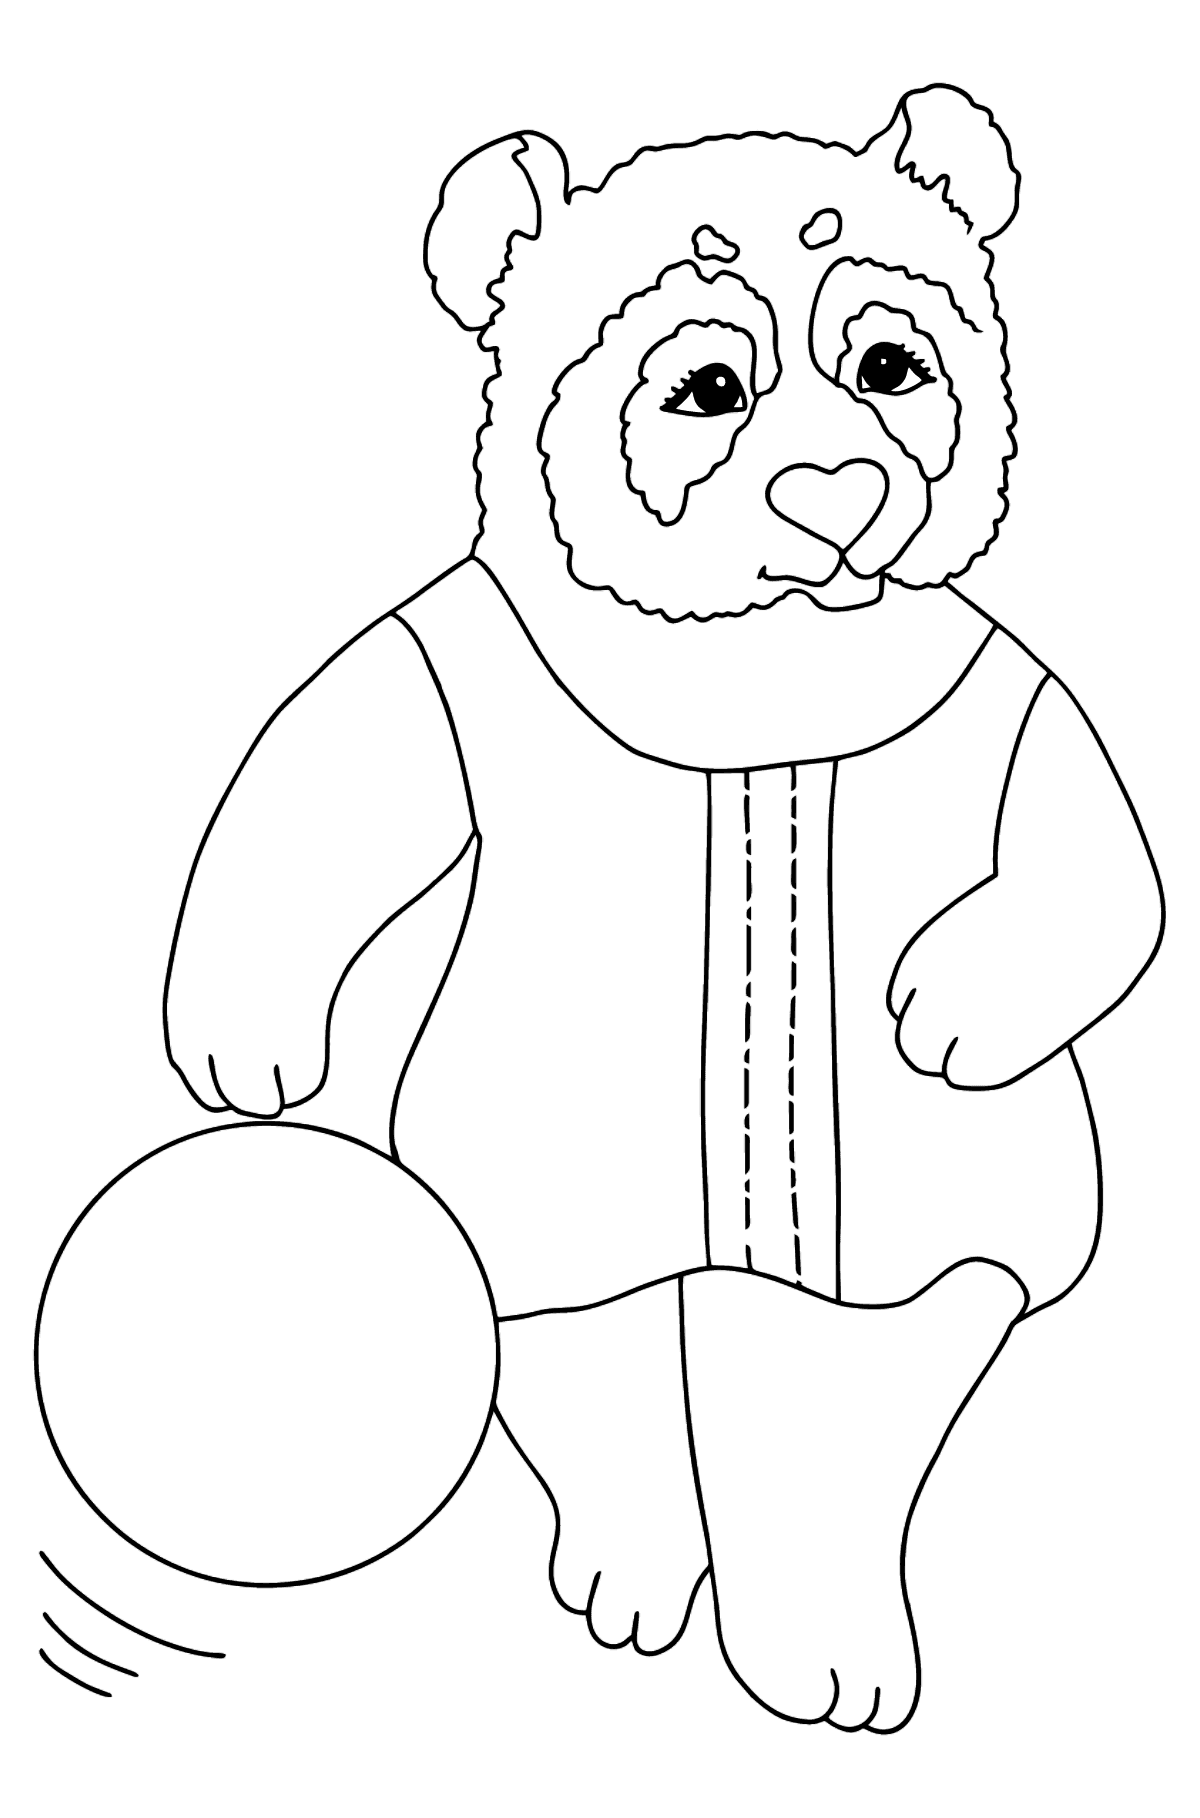 Coloring Picture - A Panda is Resting on a Beach - Coloring Pages for Kids